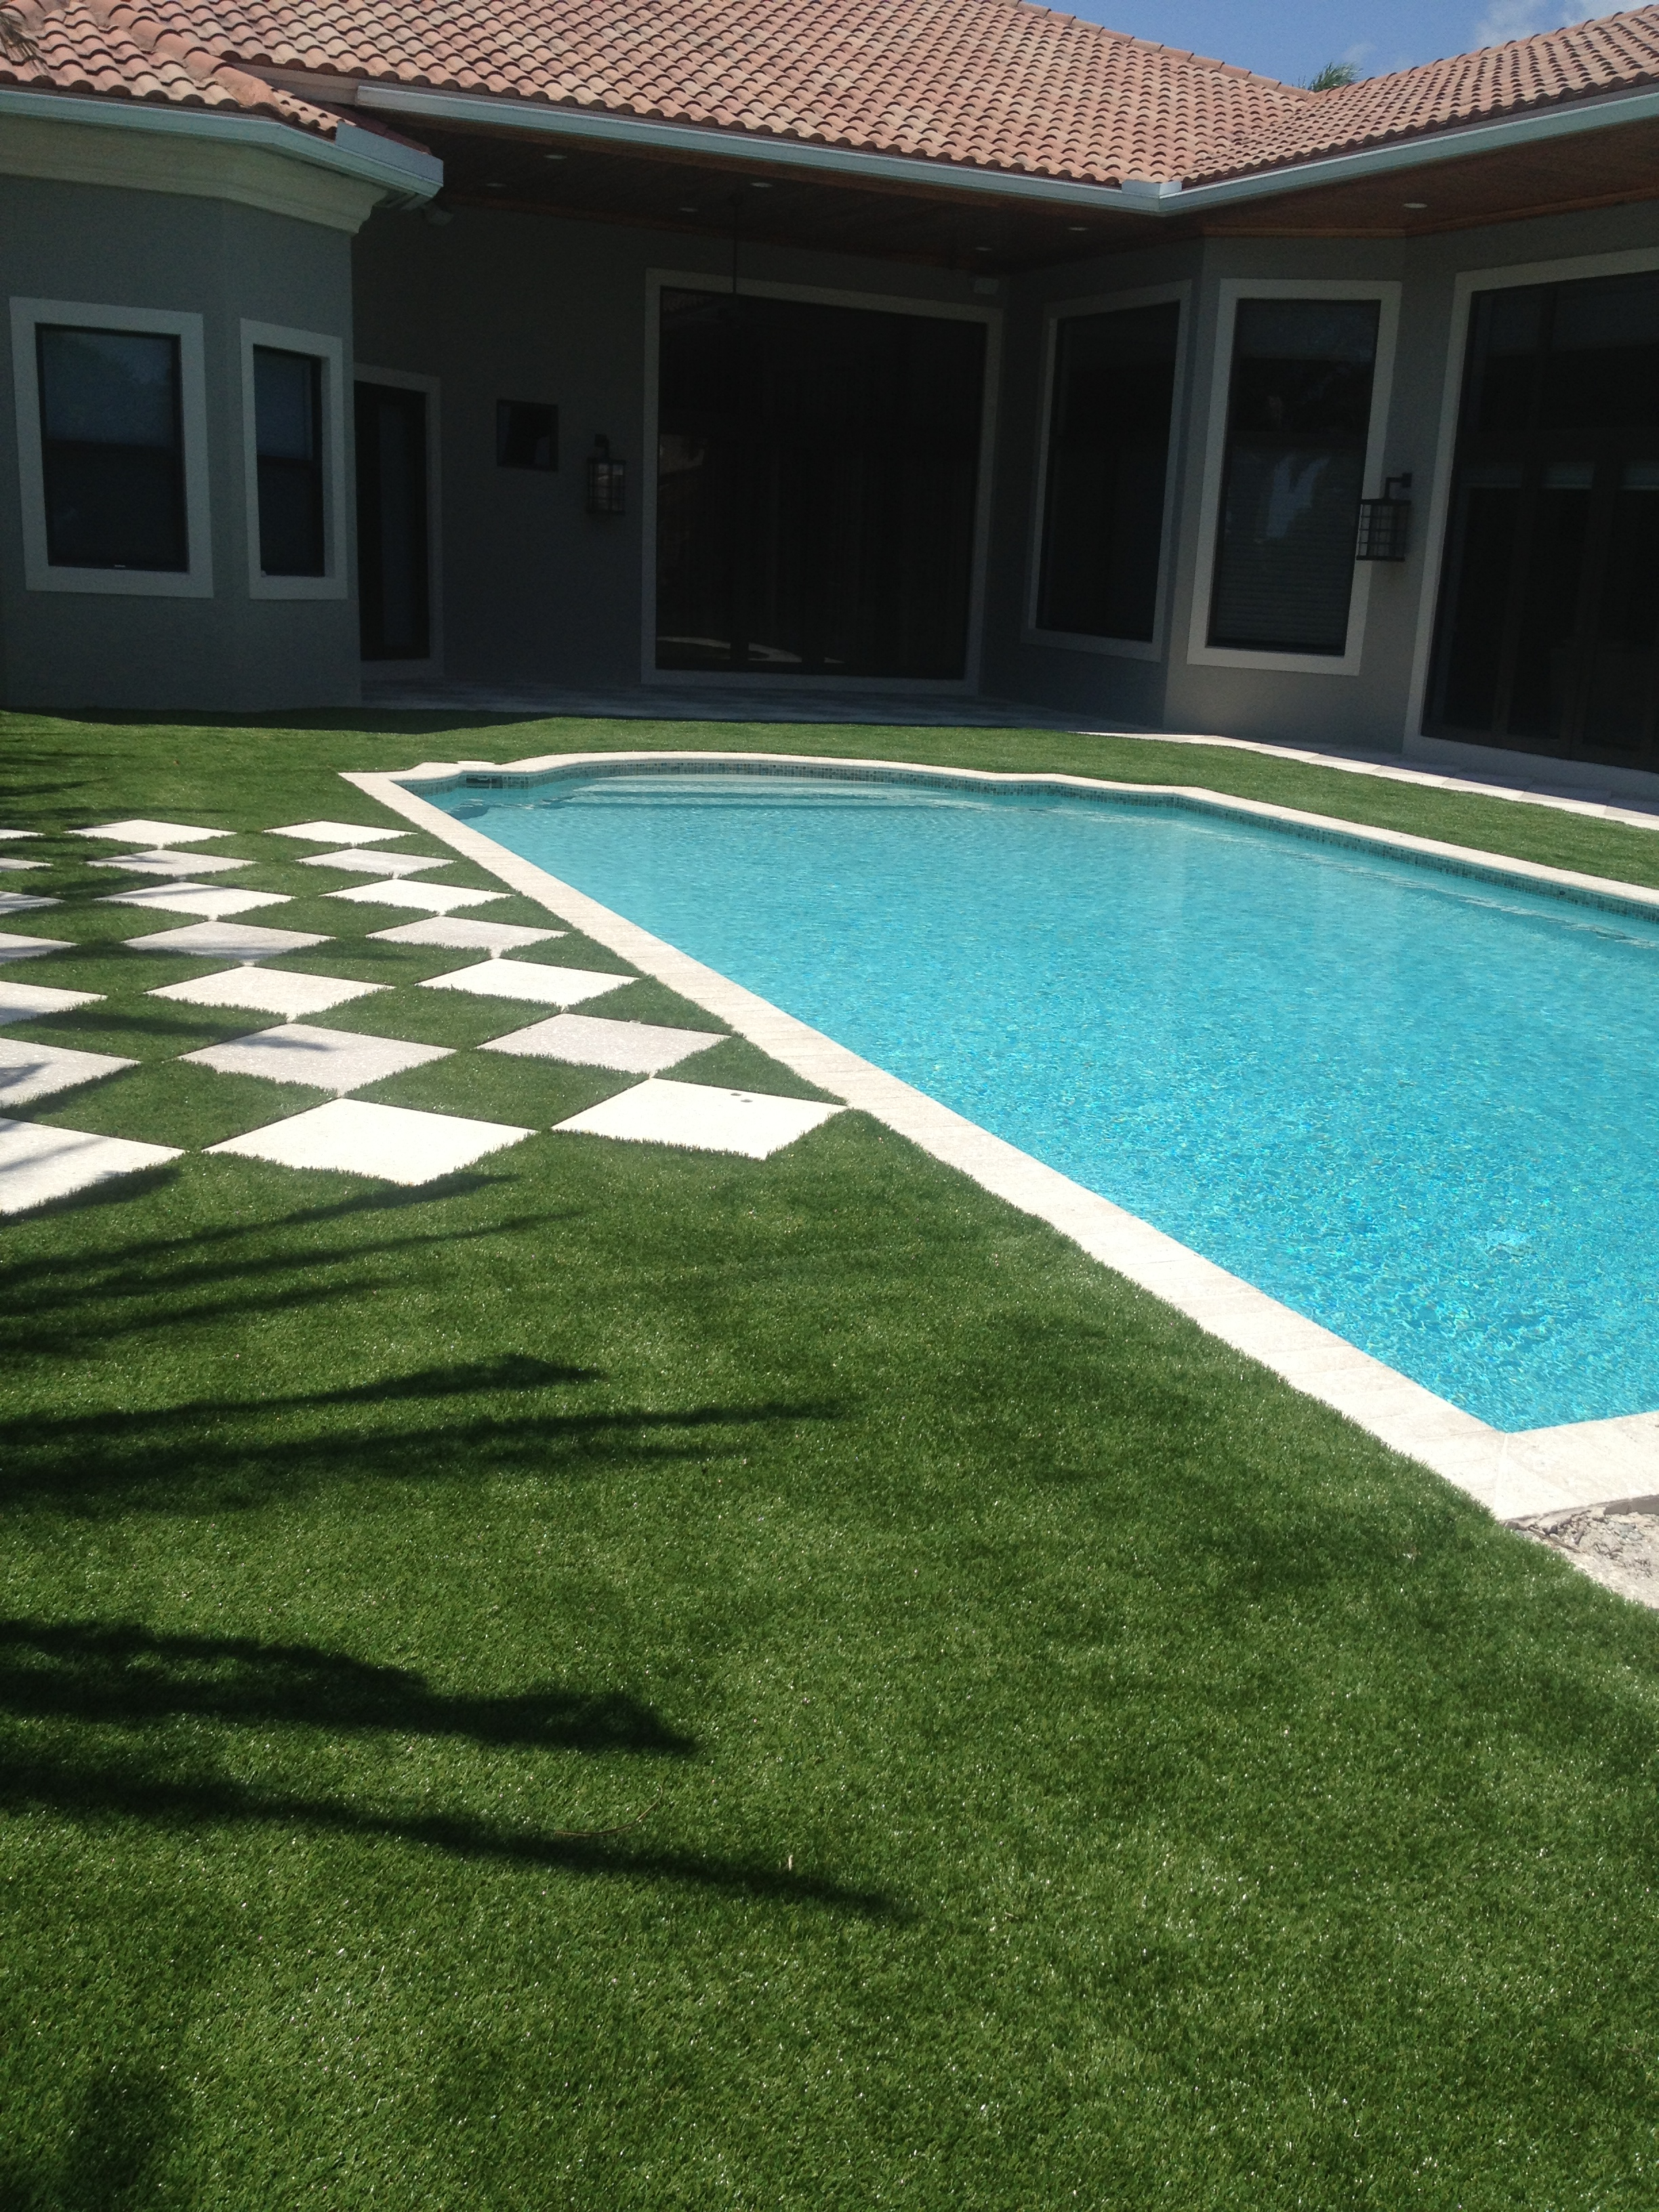 A pattern of pavers as a walkway in the grass alongside the pool